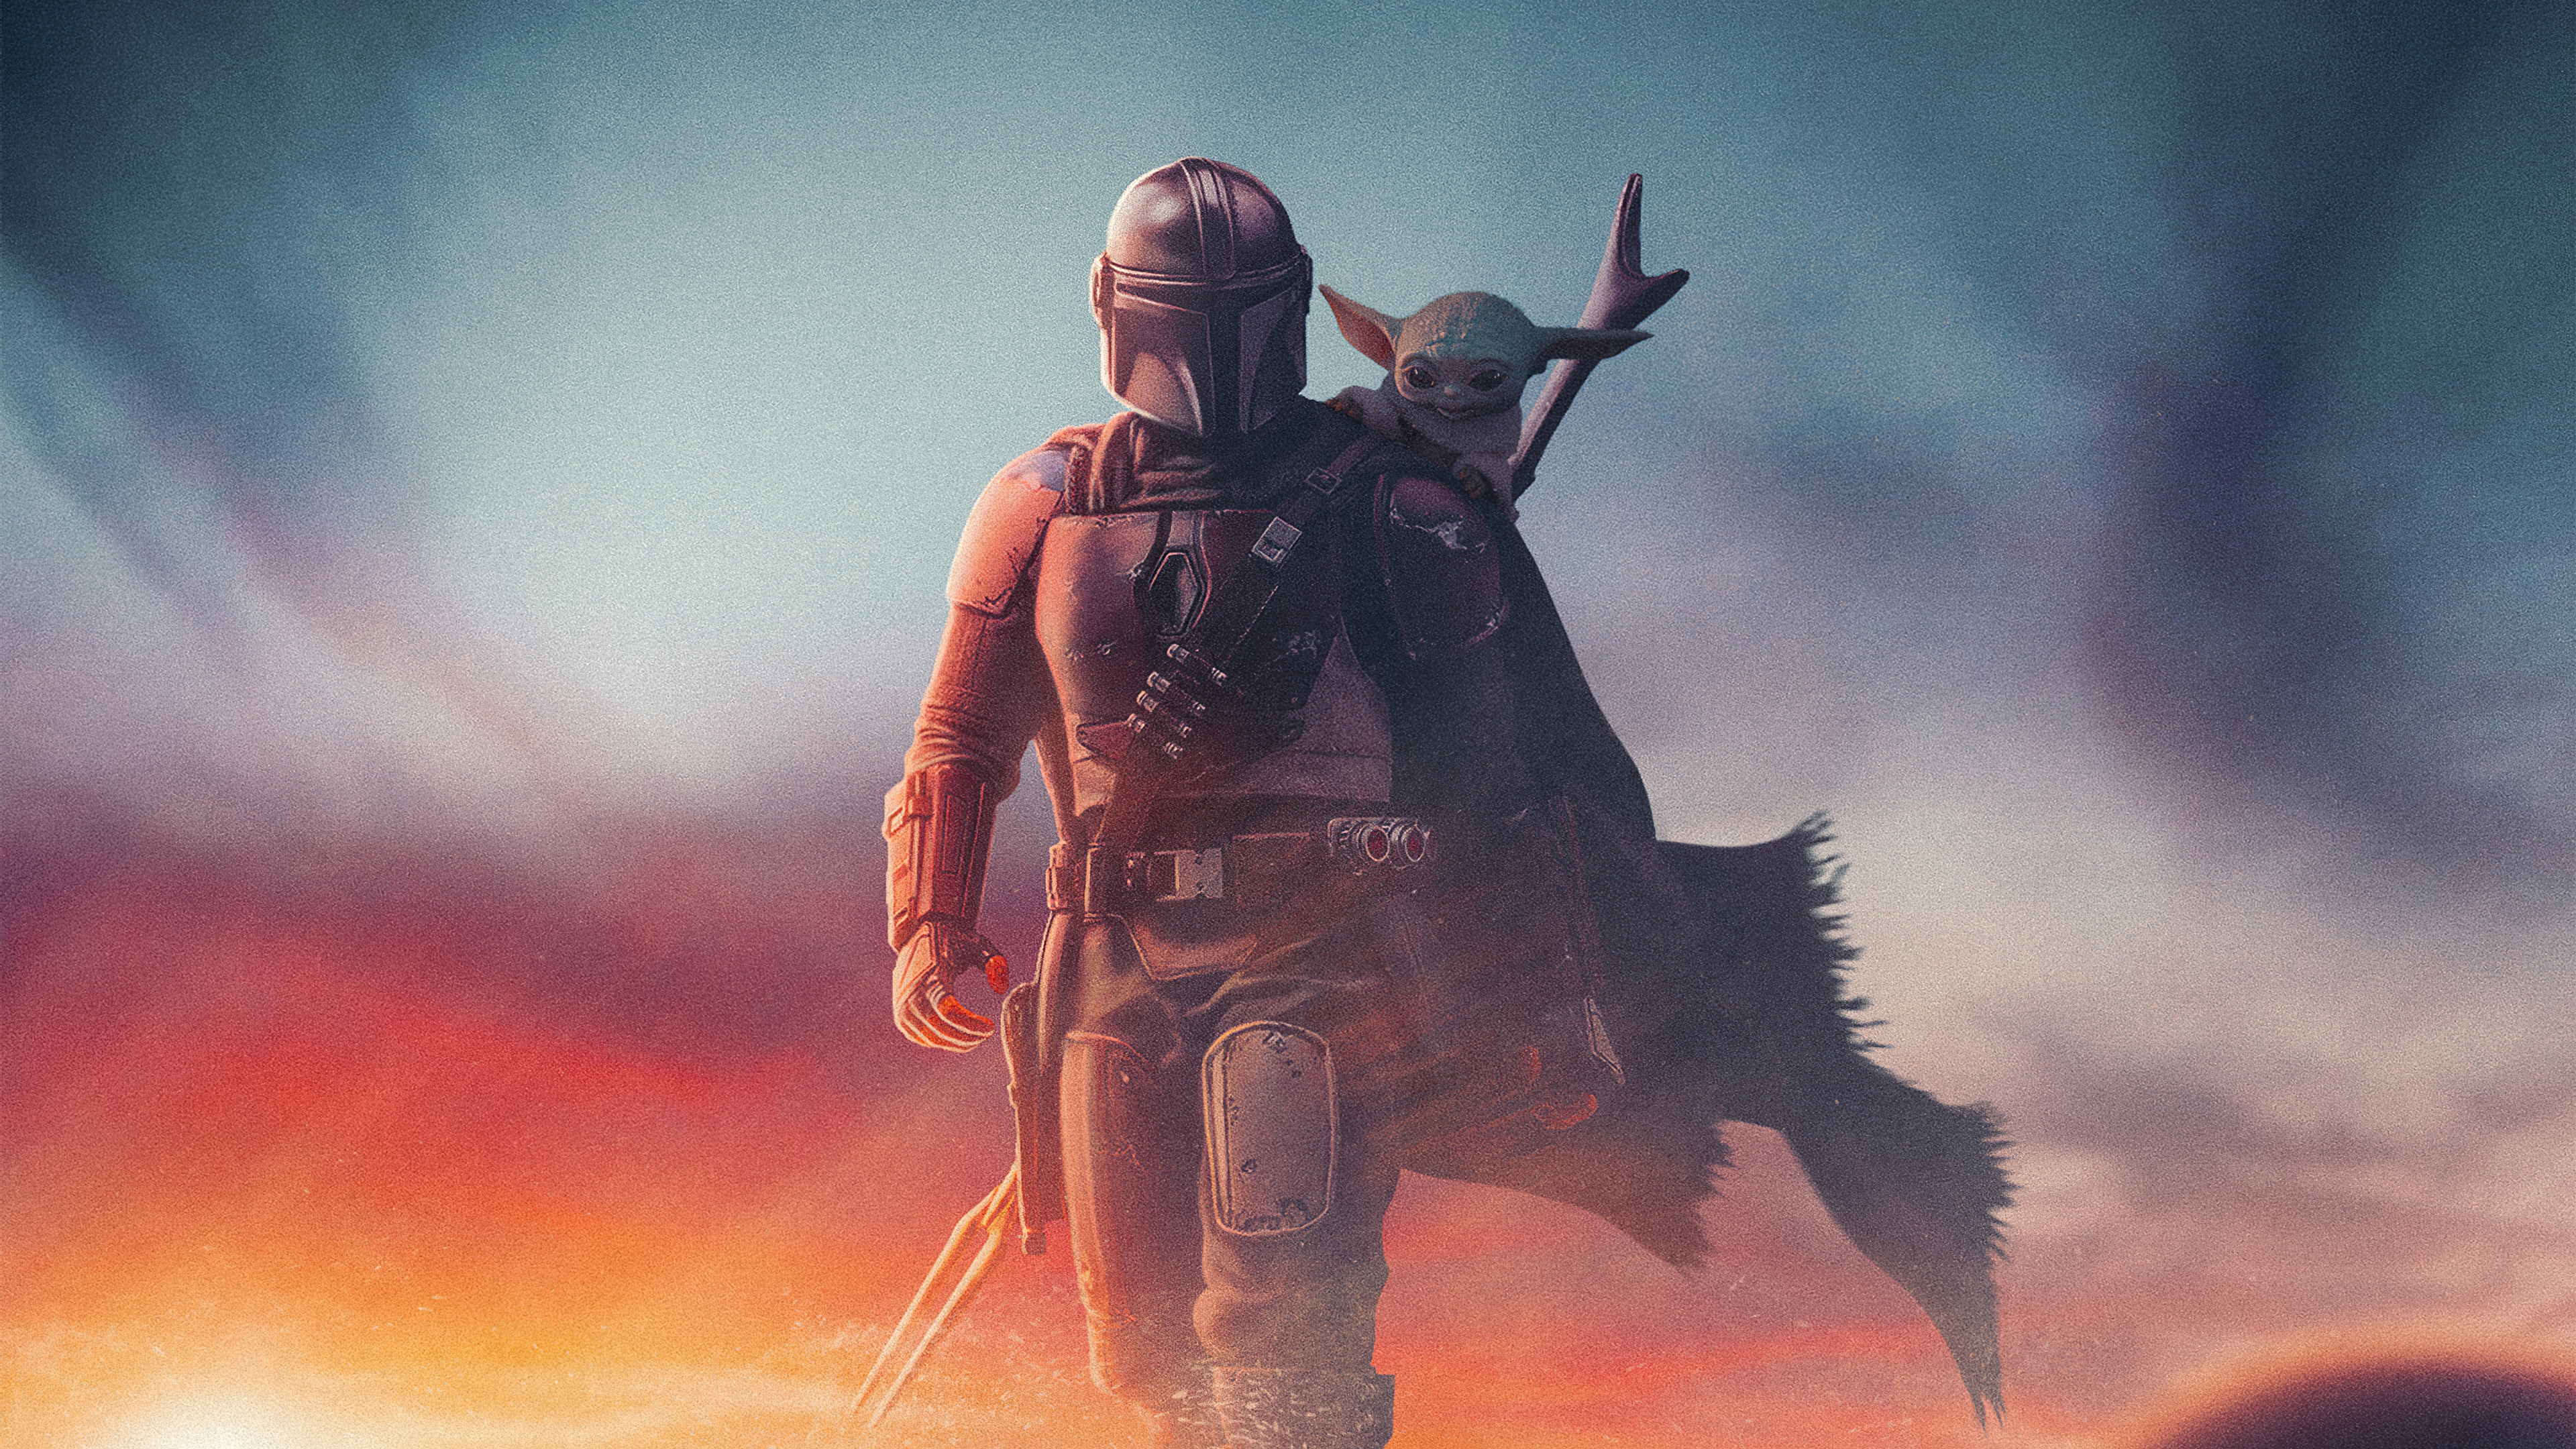 44 Star Wars Hd Wallpapers Backgrounds